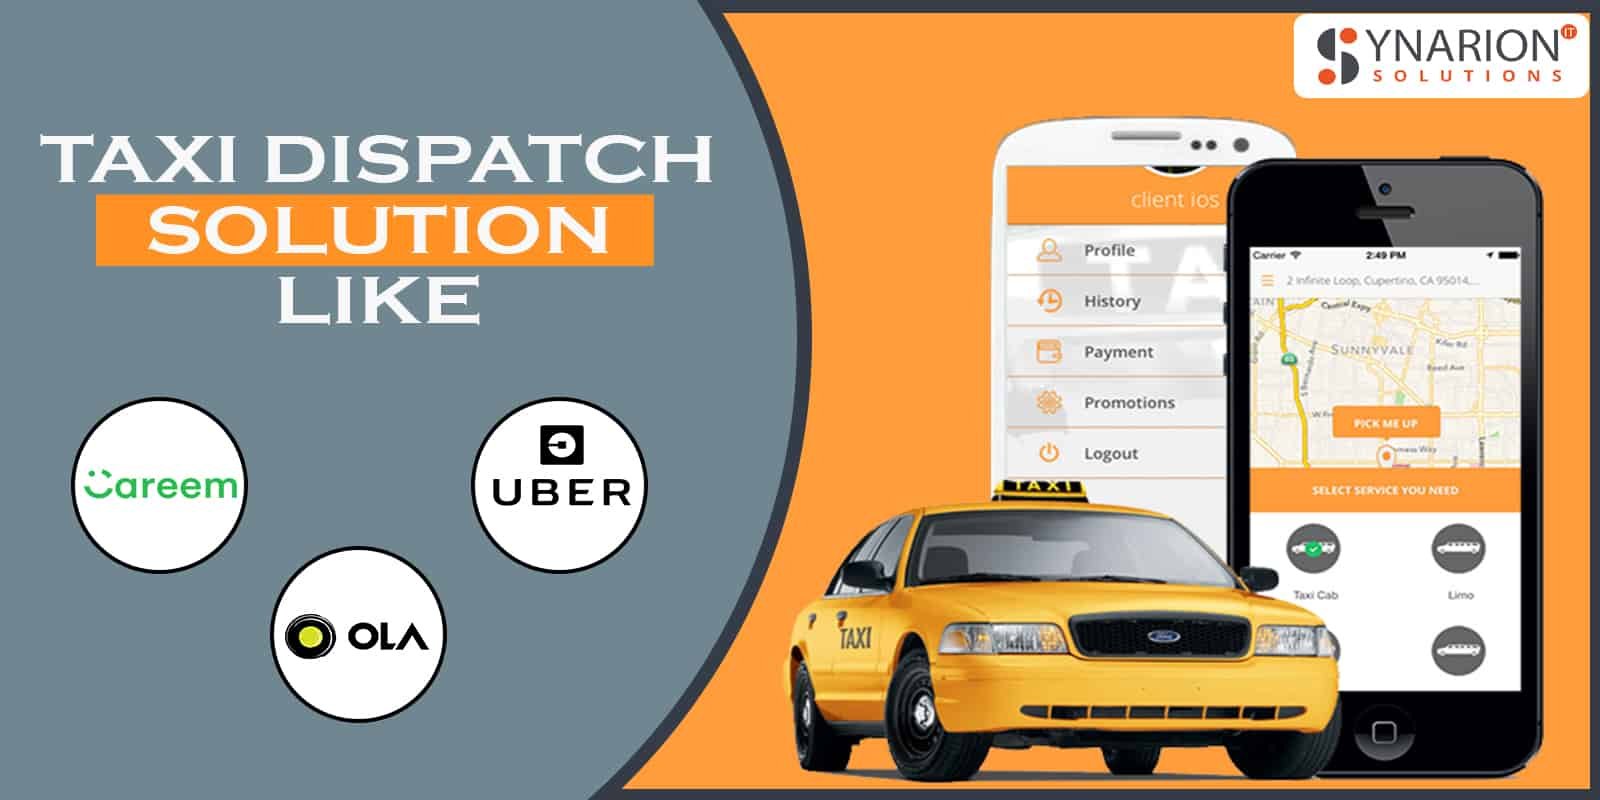 Taxi Dispatch Solution Similar To Ola, Uber and Careem